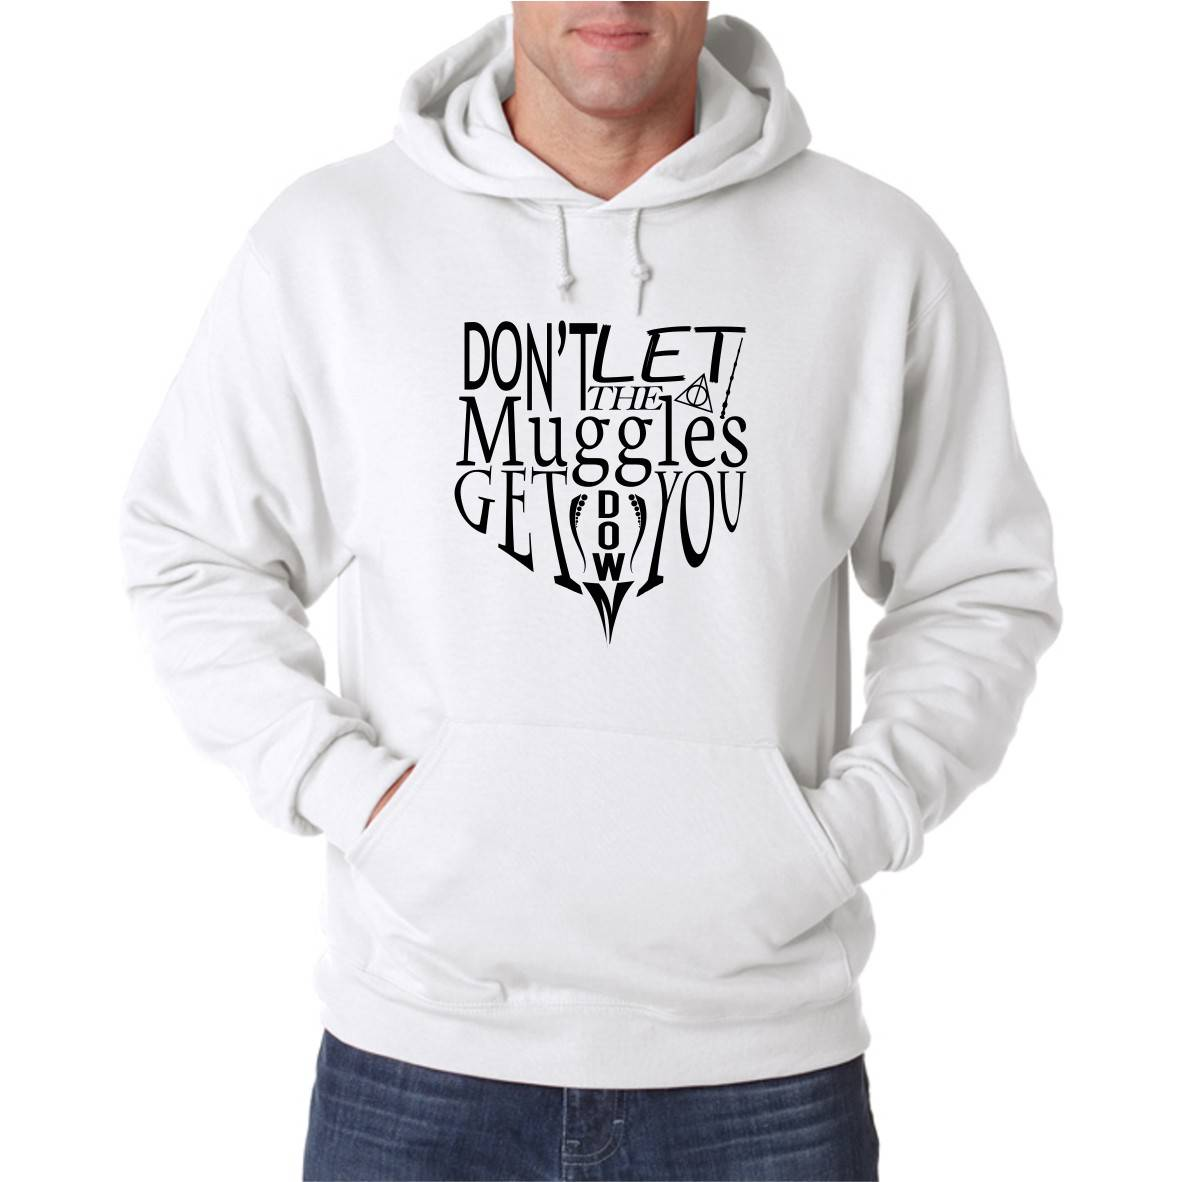 DON'T LET THE MUGGLES GET YOU DOWN HOODED